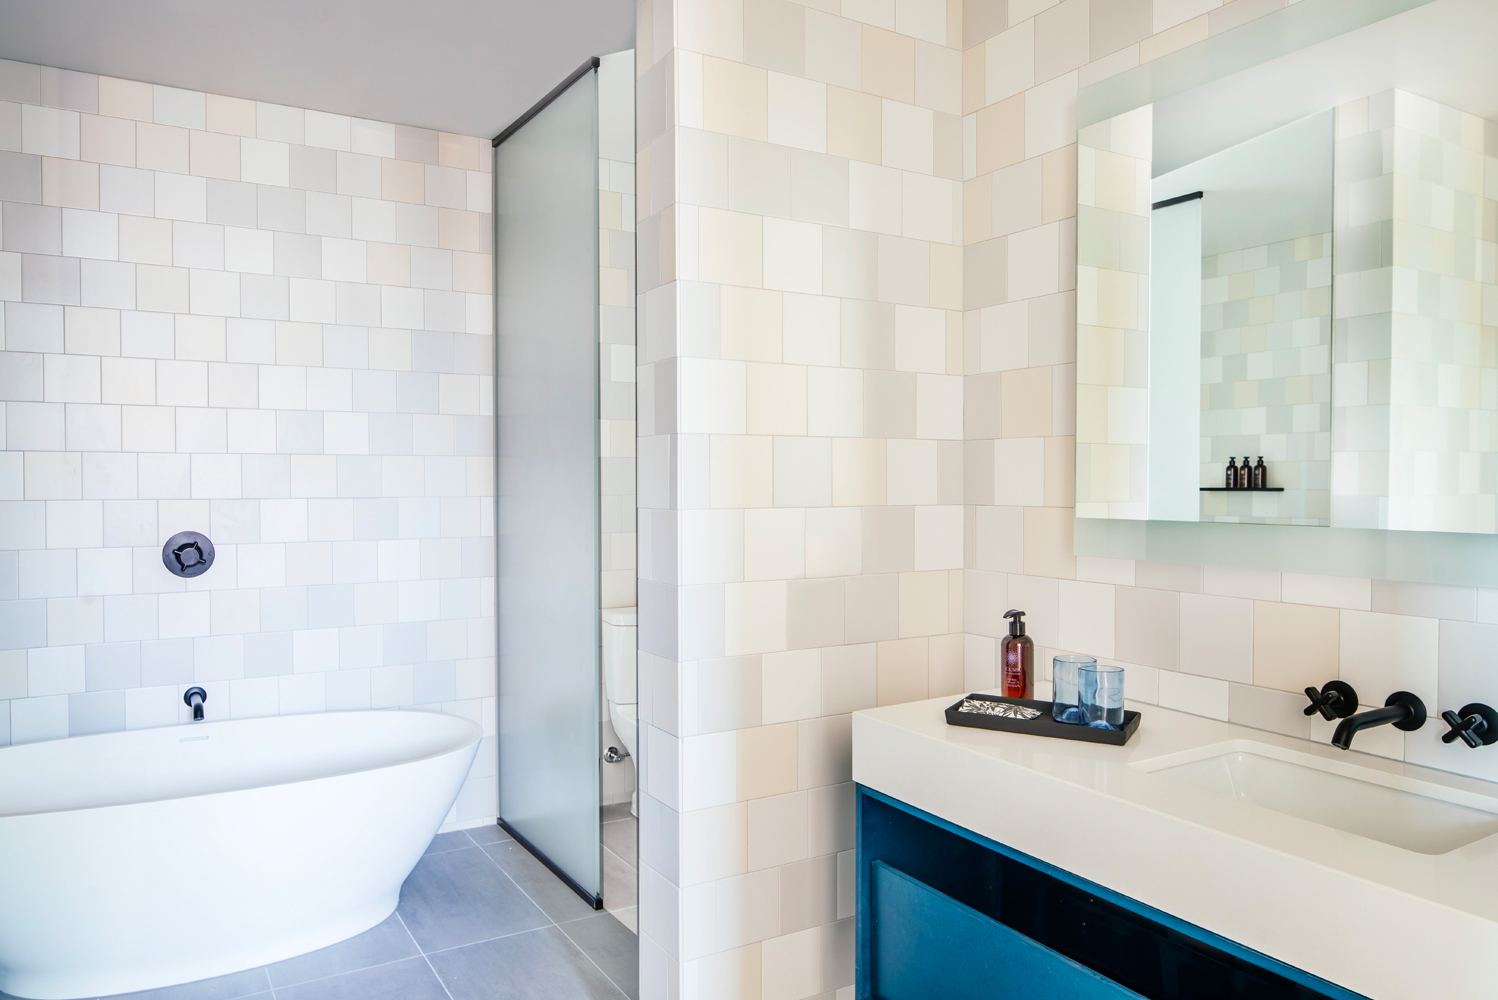 Bathrooms have glass walk-in showers, with select rooms offering freestanding soaking tubs.